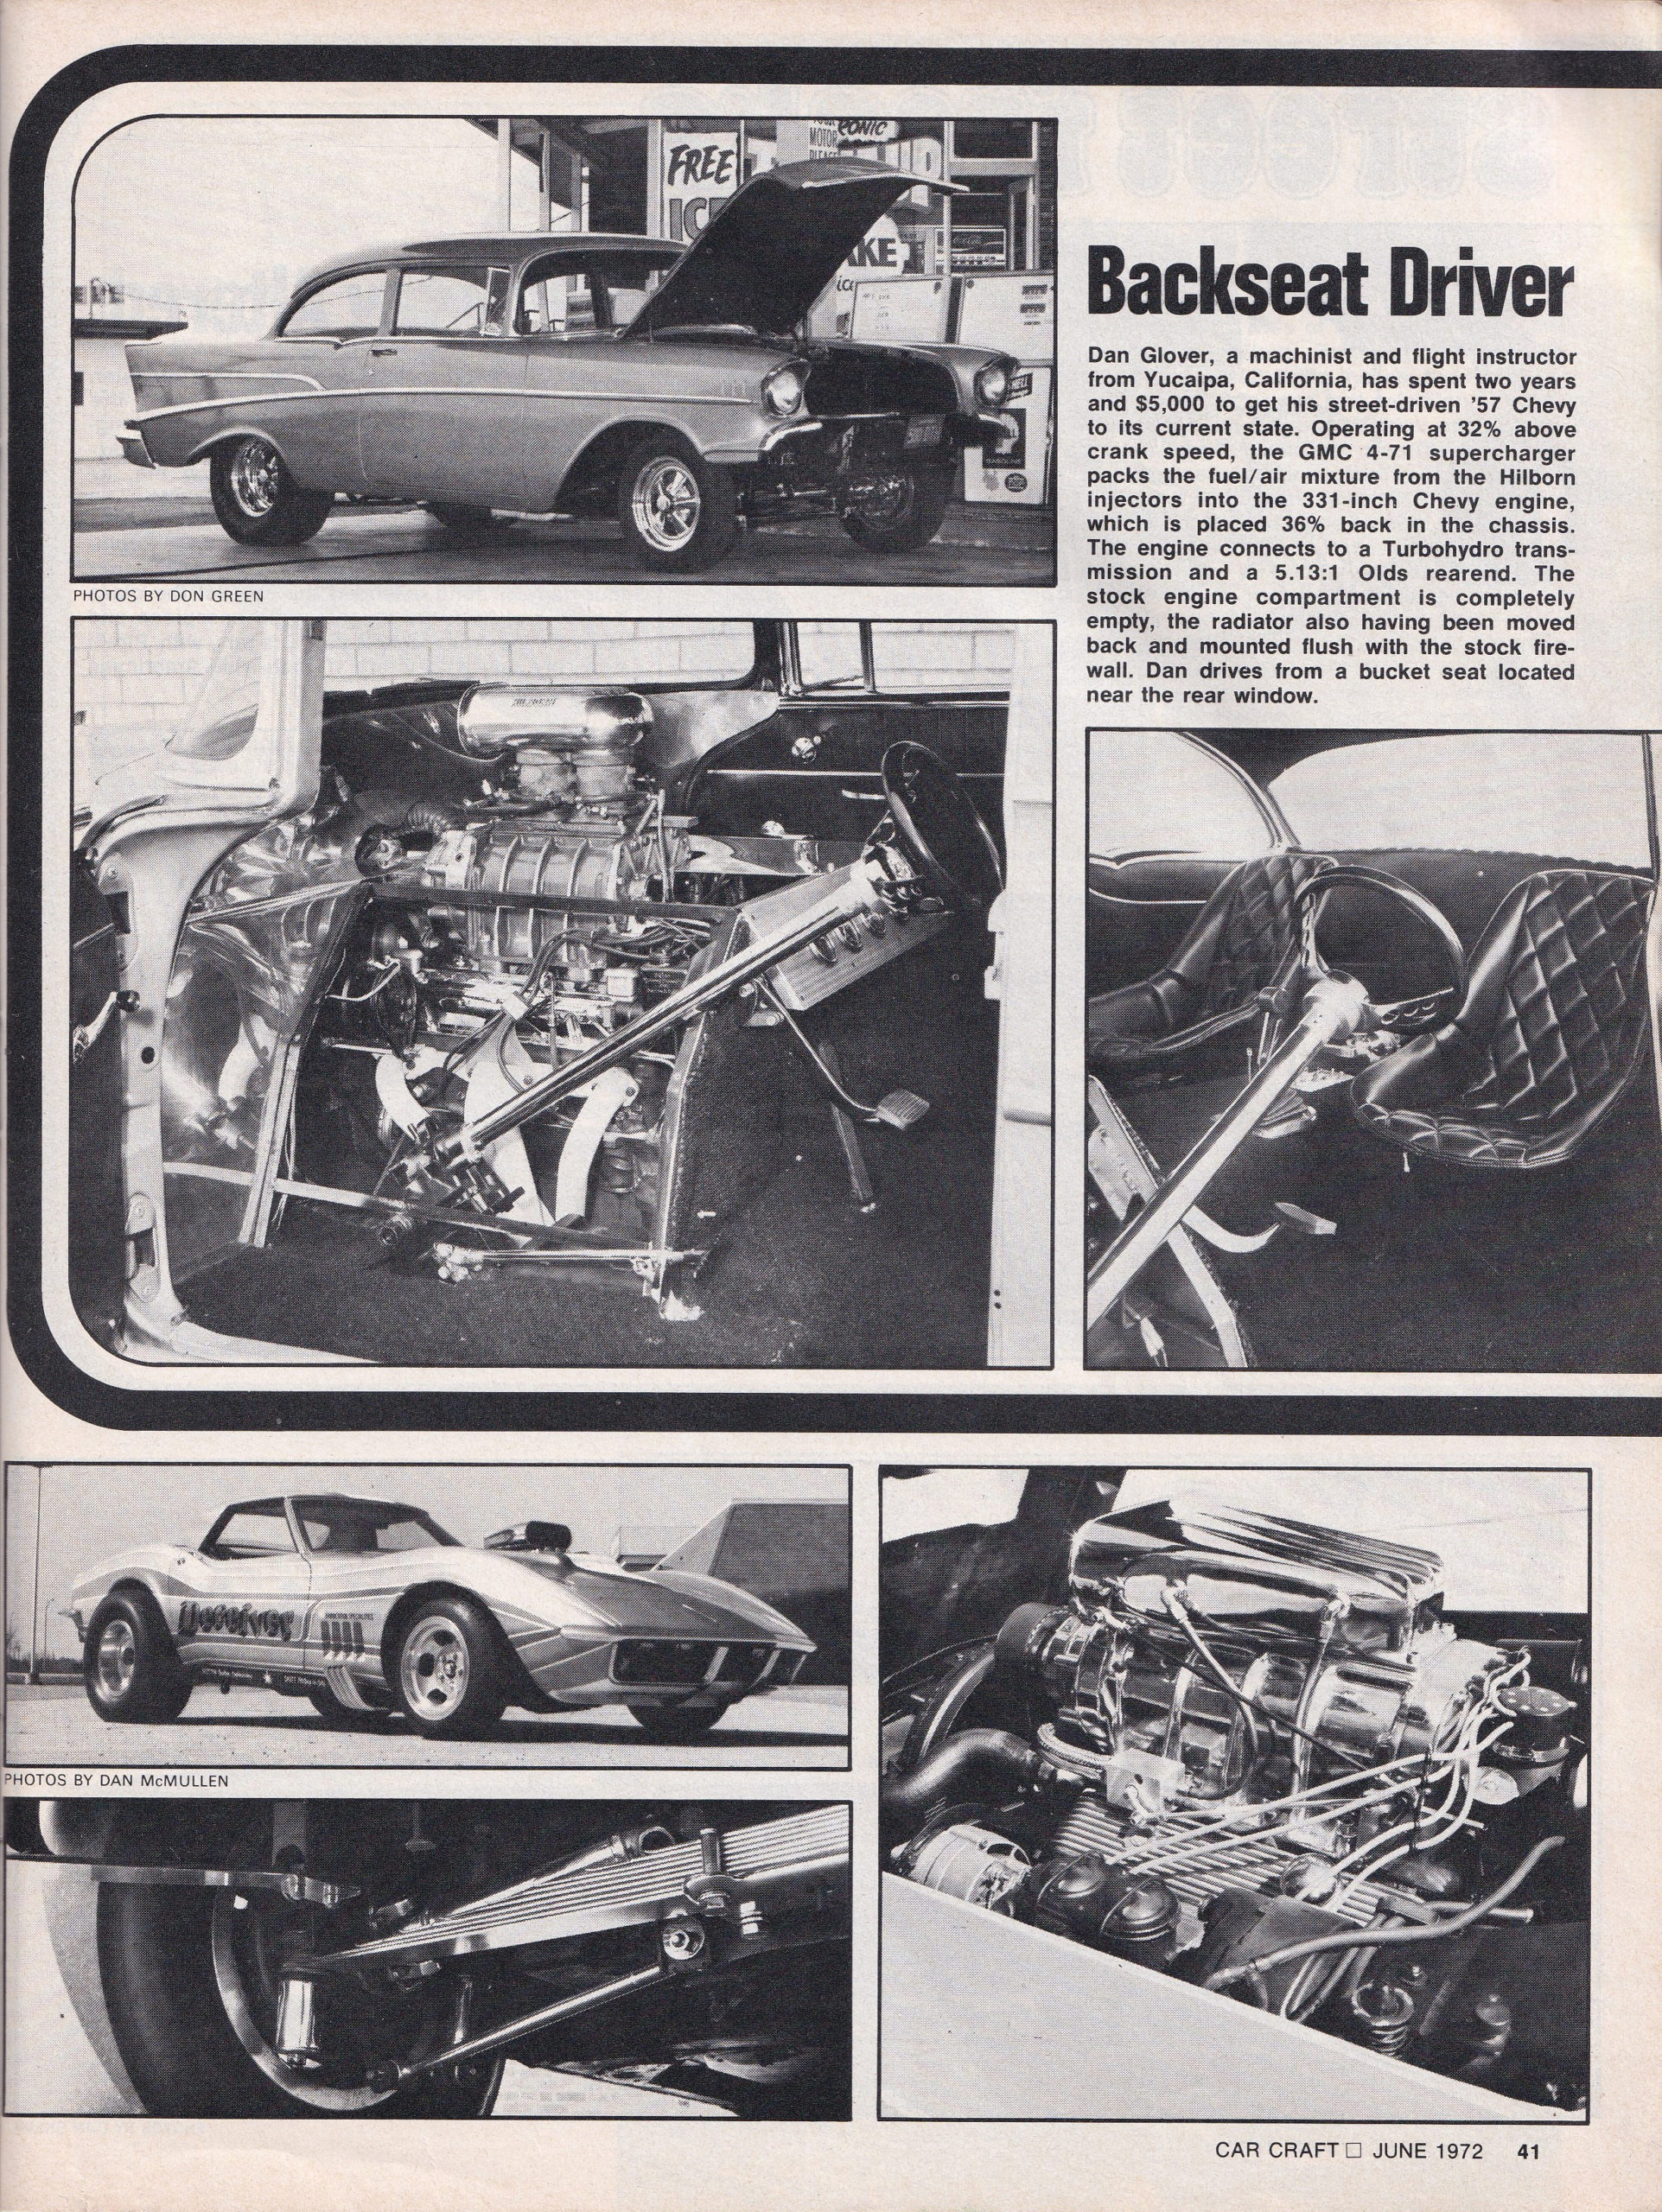 Street Freaks section from June 1972 issue of Car Craft, page 3.